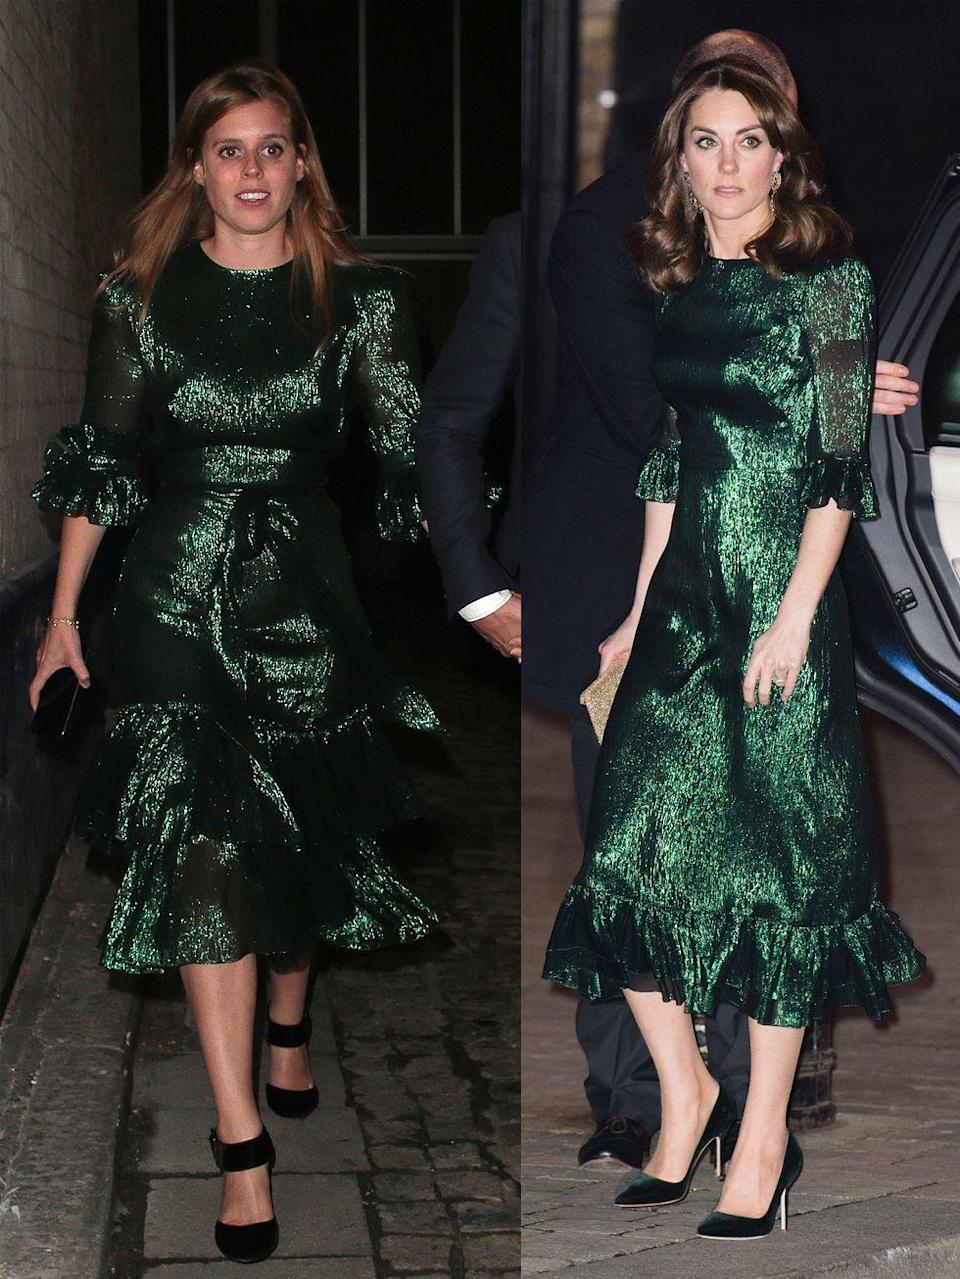 """<p>Princess Beatrice and Duchess Kate wore similar emerald dresses from cool-girl brand, <a href=""""https://www.townandcountrymag.com/society/tradition/a31213638/kate-middleton-princess-beatrice-same-green-dress/"""" rel=""""nofollow noopener"""" target=""""_blank"""" data-ylk=""""slk:The Vampire's Wife"""" class=""""link rapid-noclick-resp"""">The Vampire's Wife</a>. </p><p>Princess Beatrice attended <em>The Dior Sessions</em> book launch afterparty on October 1, 2019 in London. </p><p>Catherine, Duchess of Cambridge, attended Guinness Storehouse's Gravity Bar in Dublin during the first day of her Ireland visit on March 3, 2020. </p>"""